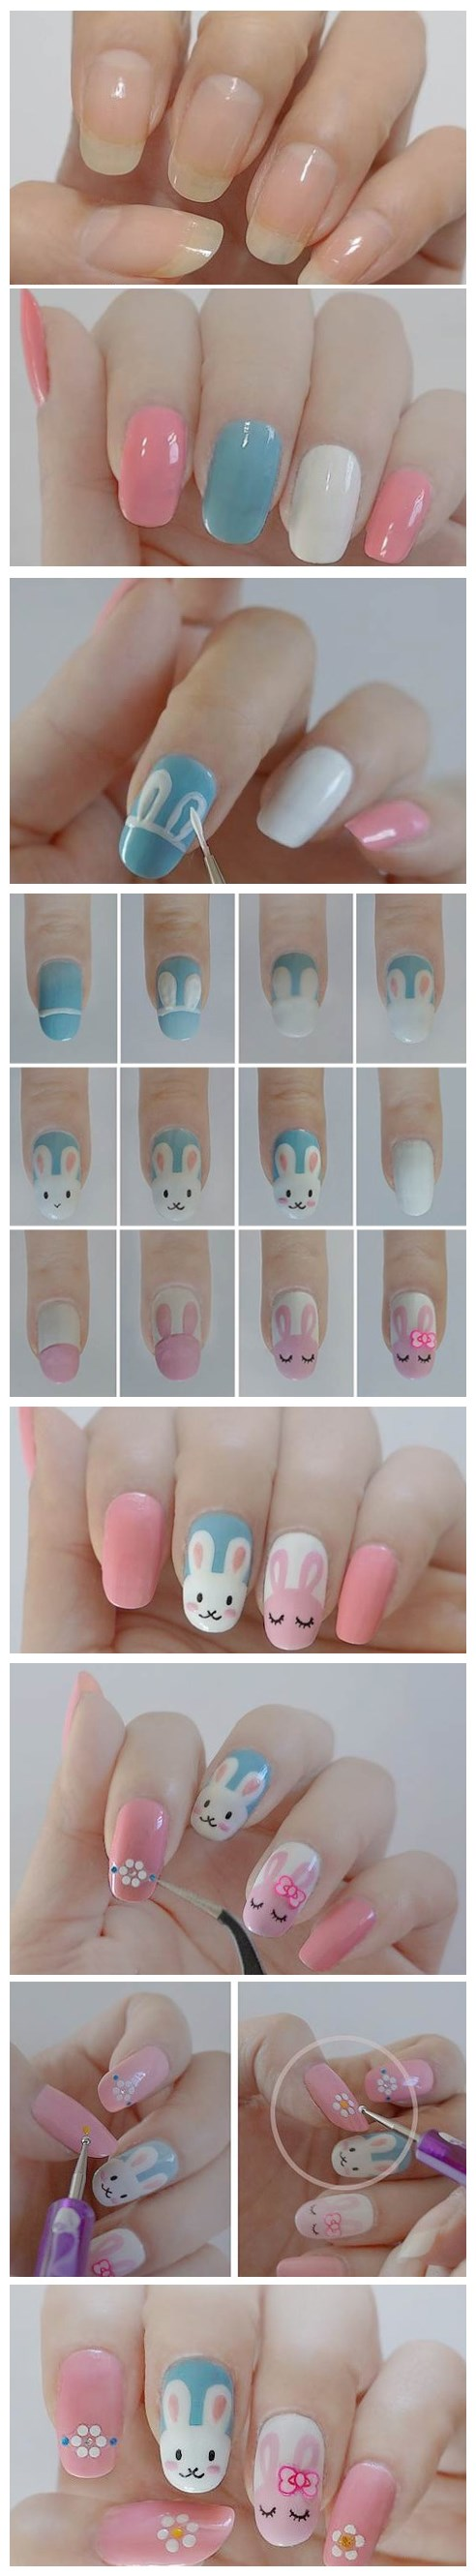 how to make cute DIY Easter bunny nail polish manicure design step by step DIY tutorial instruction